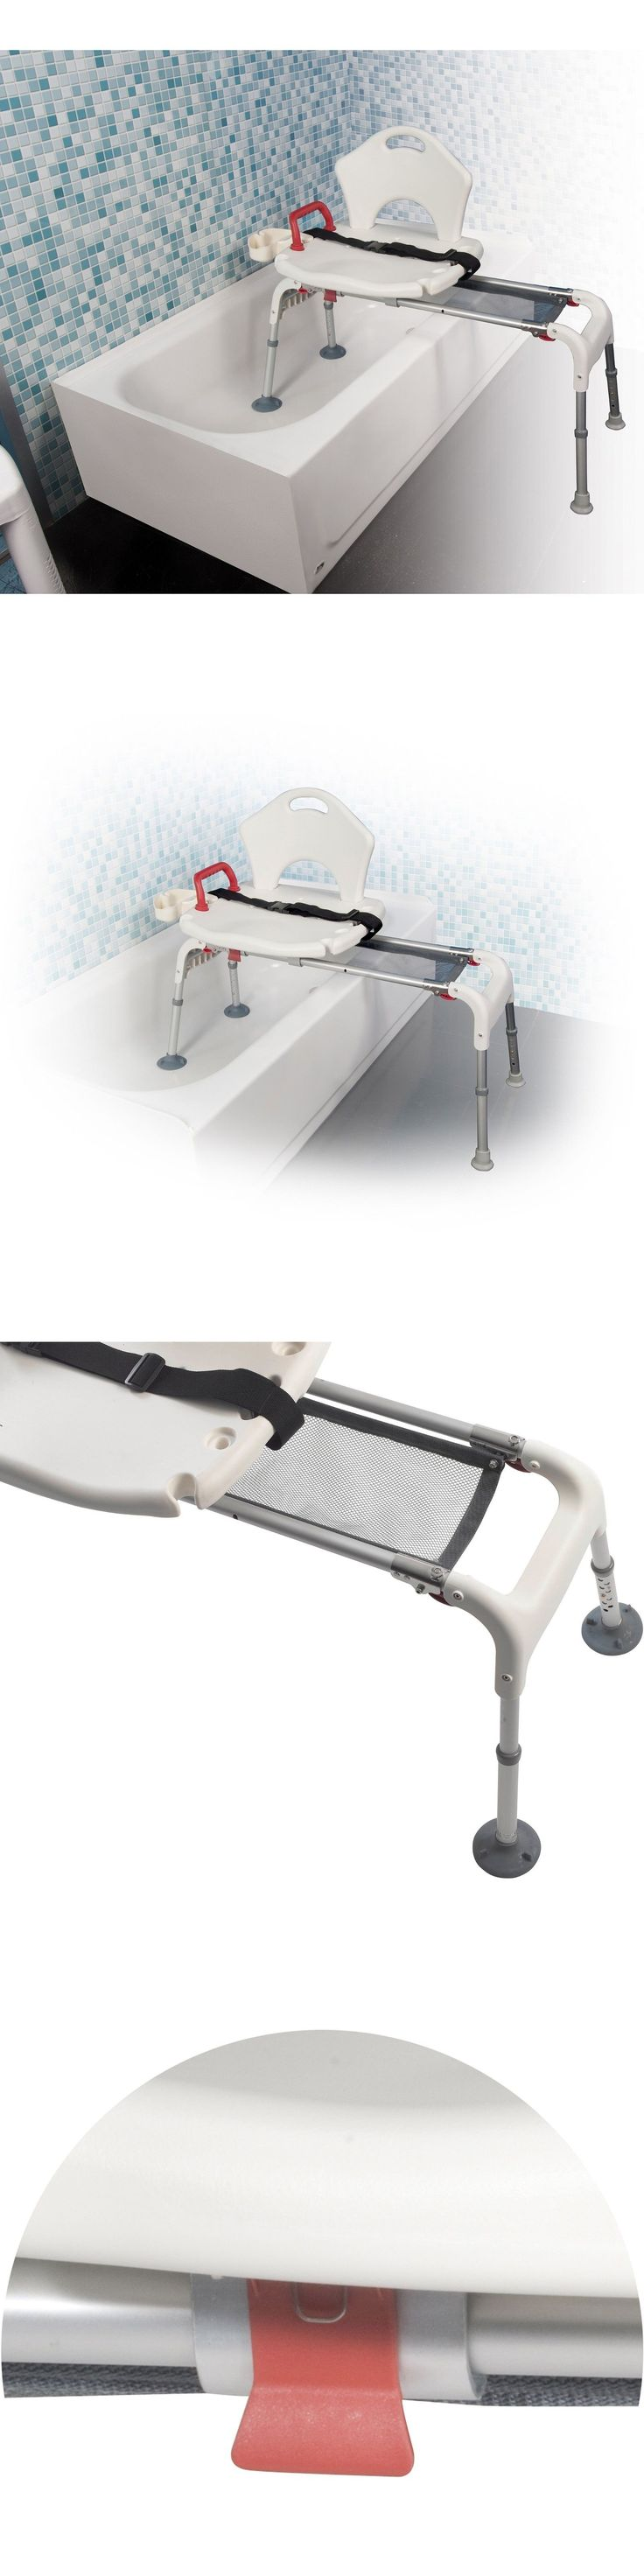 Transfer Boards and Benches: Elderly Tub Transfer Bench Folding Shower Sliding Senior Seat Chair Disabled 300 -> BUY IT NOW ONLY: $159.99 on eBay!